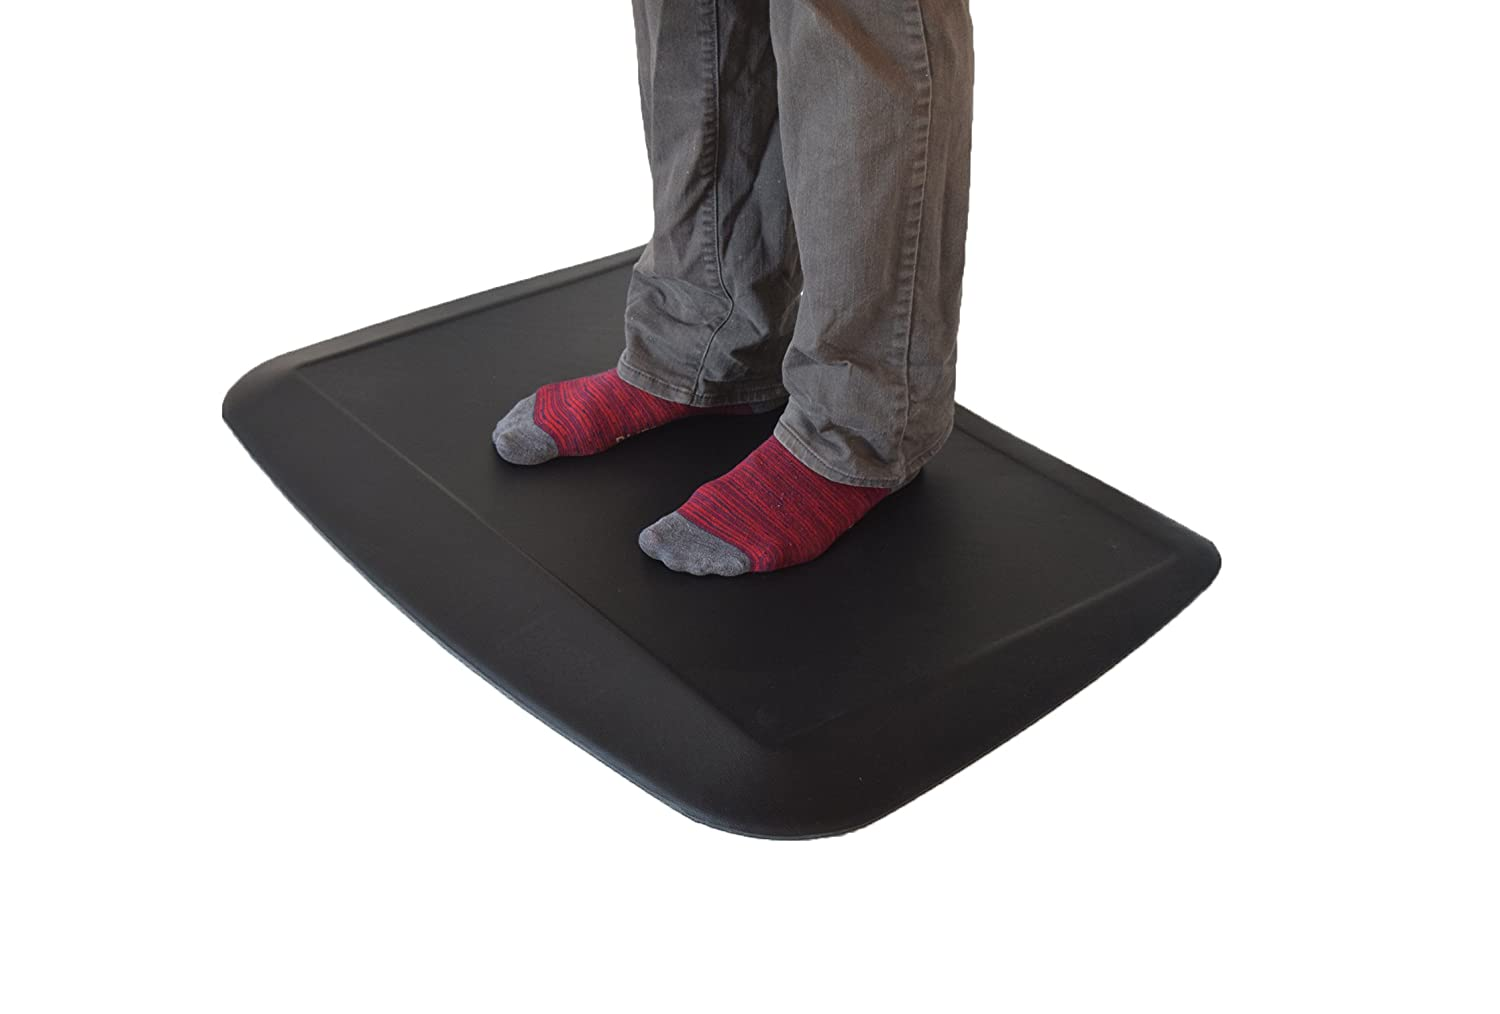 mats pain reduce mat extreme from guide fatigue best anti the standing buying